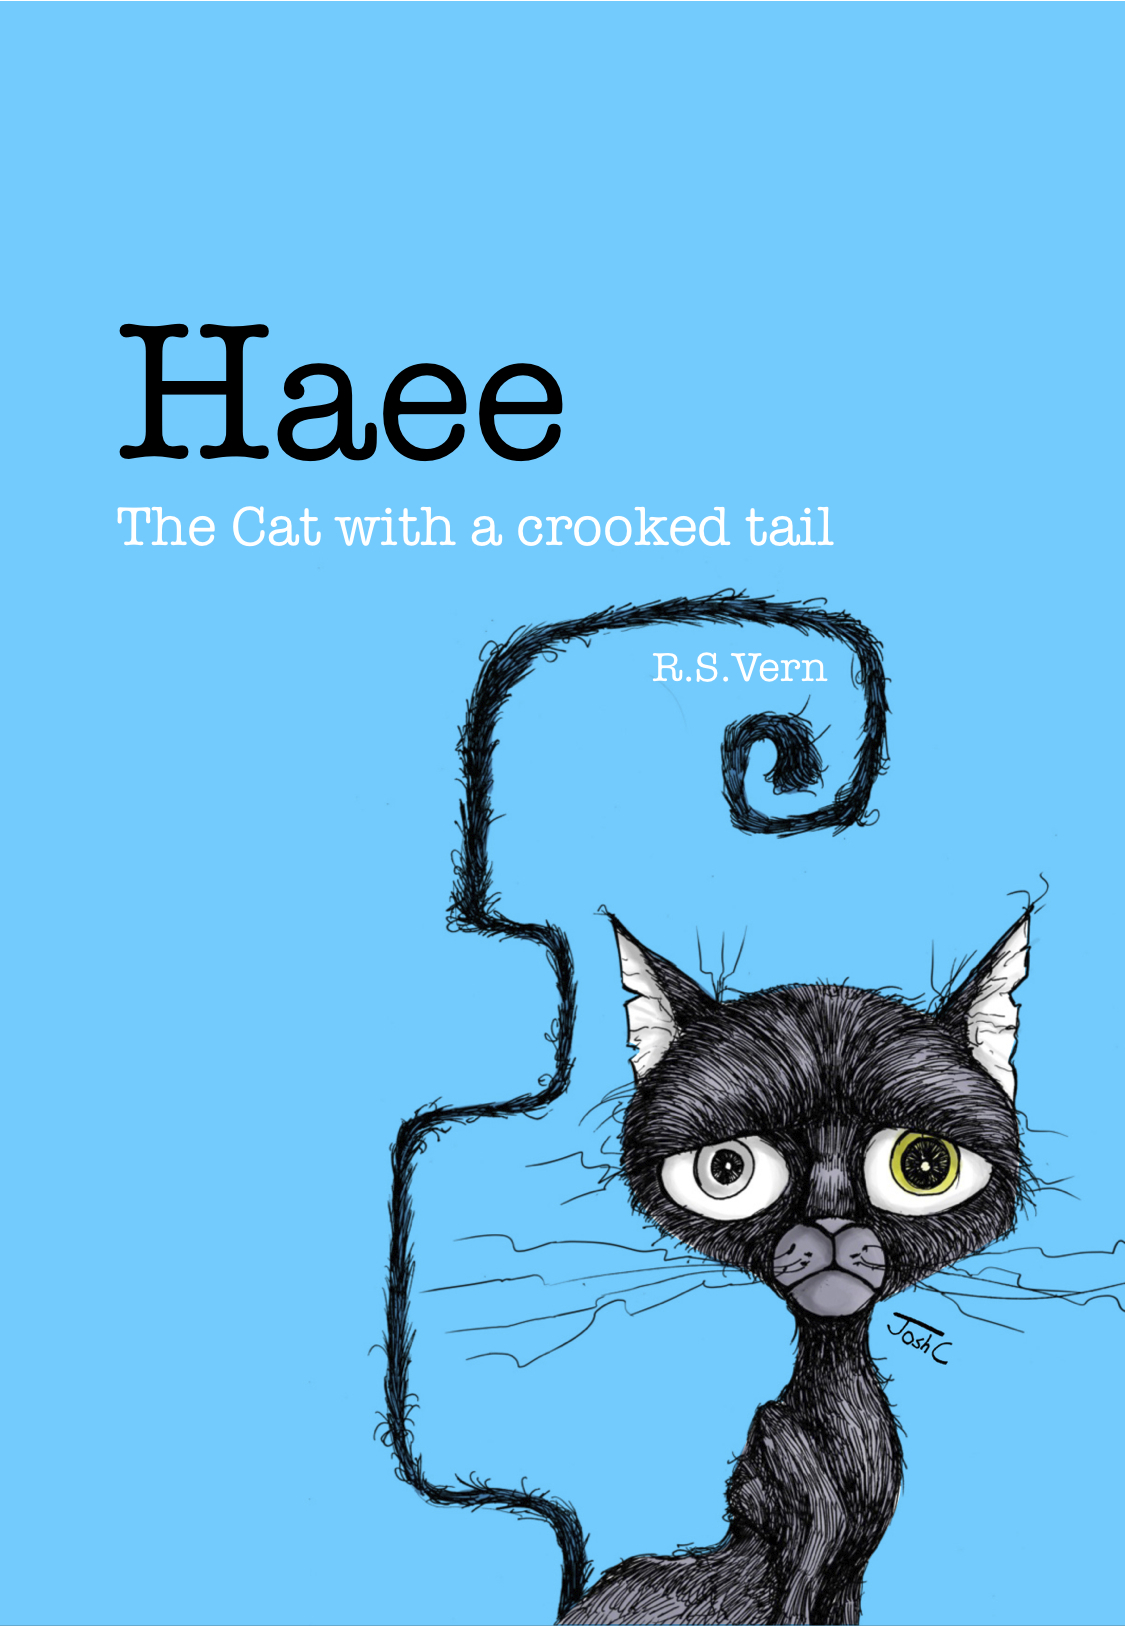 Haee The cat with a crooked tail